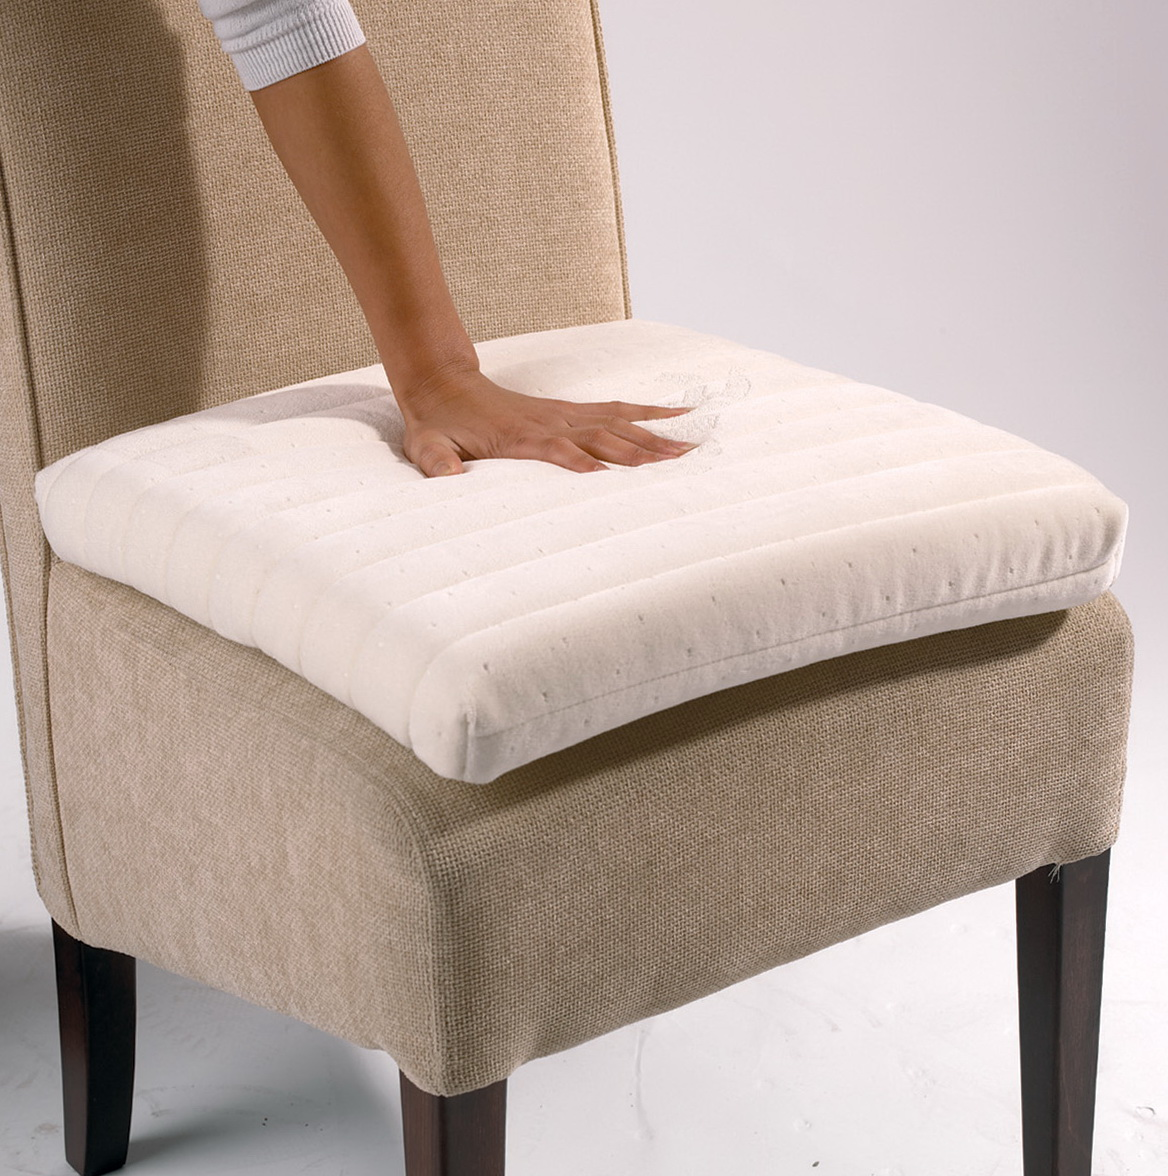 Memory Foam Cushions For Office Chairs  Home Design Ideas